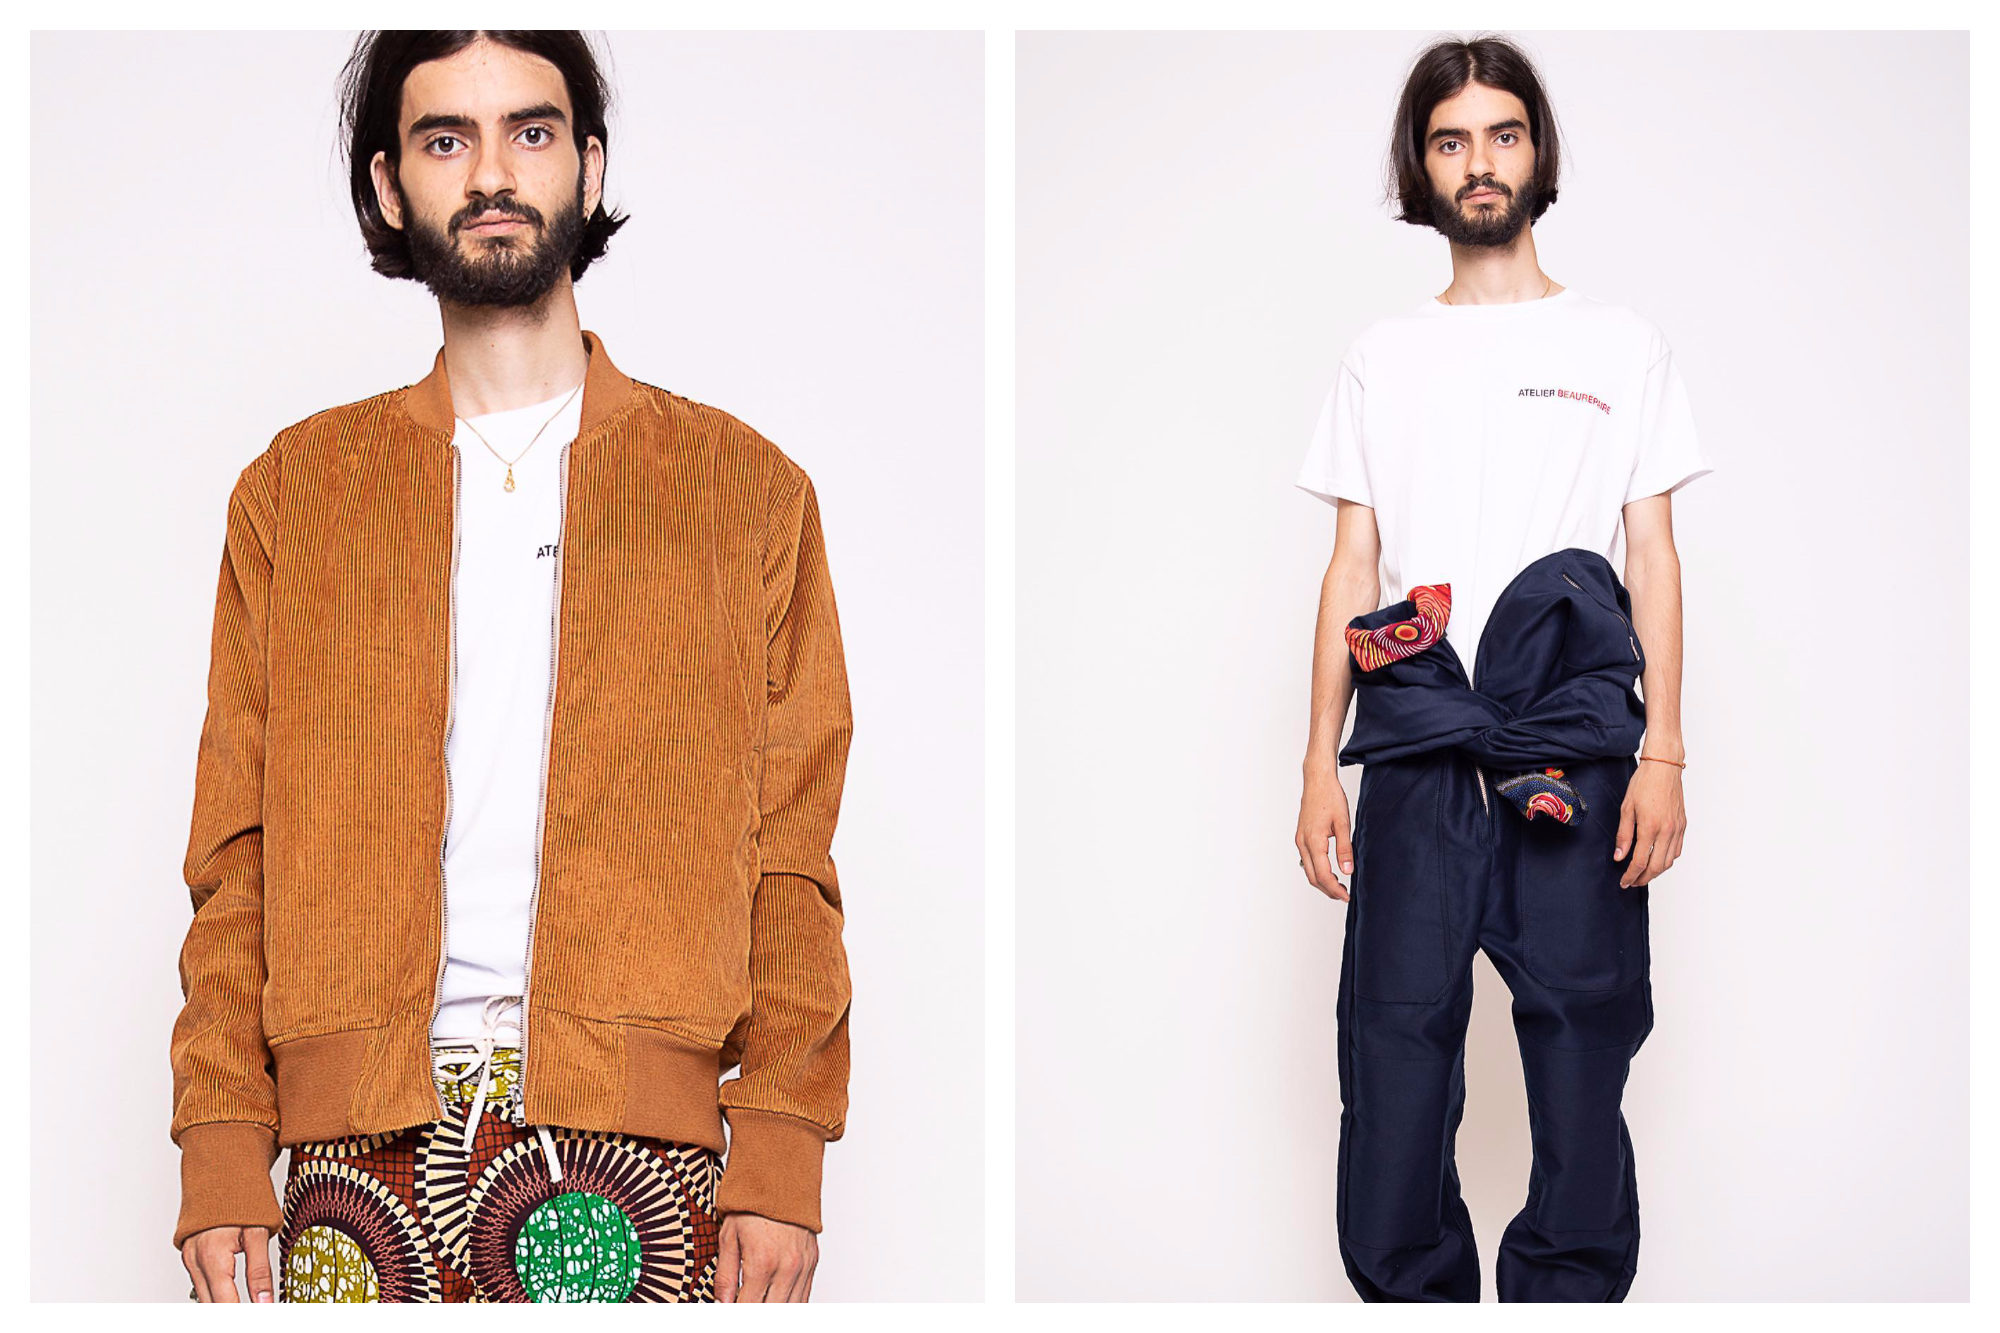 A male model wearing an orange bomber jacket and Africana print trousers (left) and a white t-whirt and jeans (right) from French menswear brand Atelier Beaurepaire.